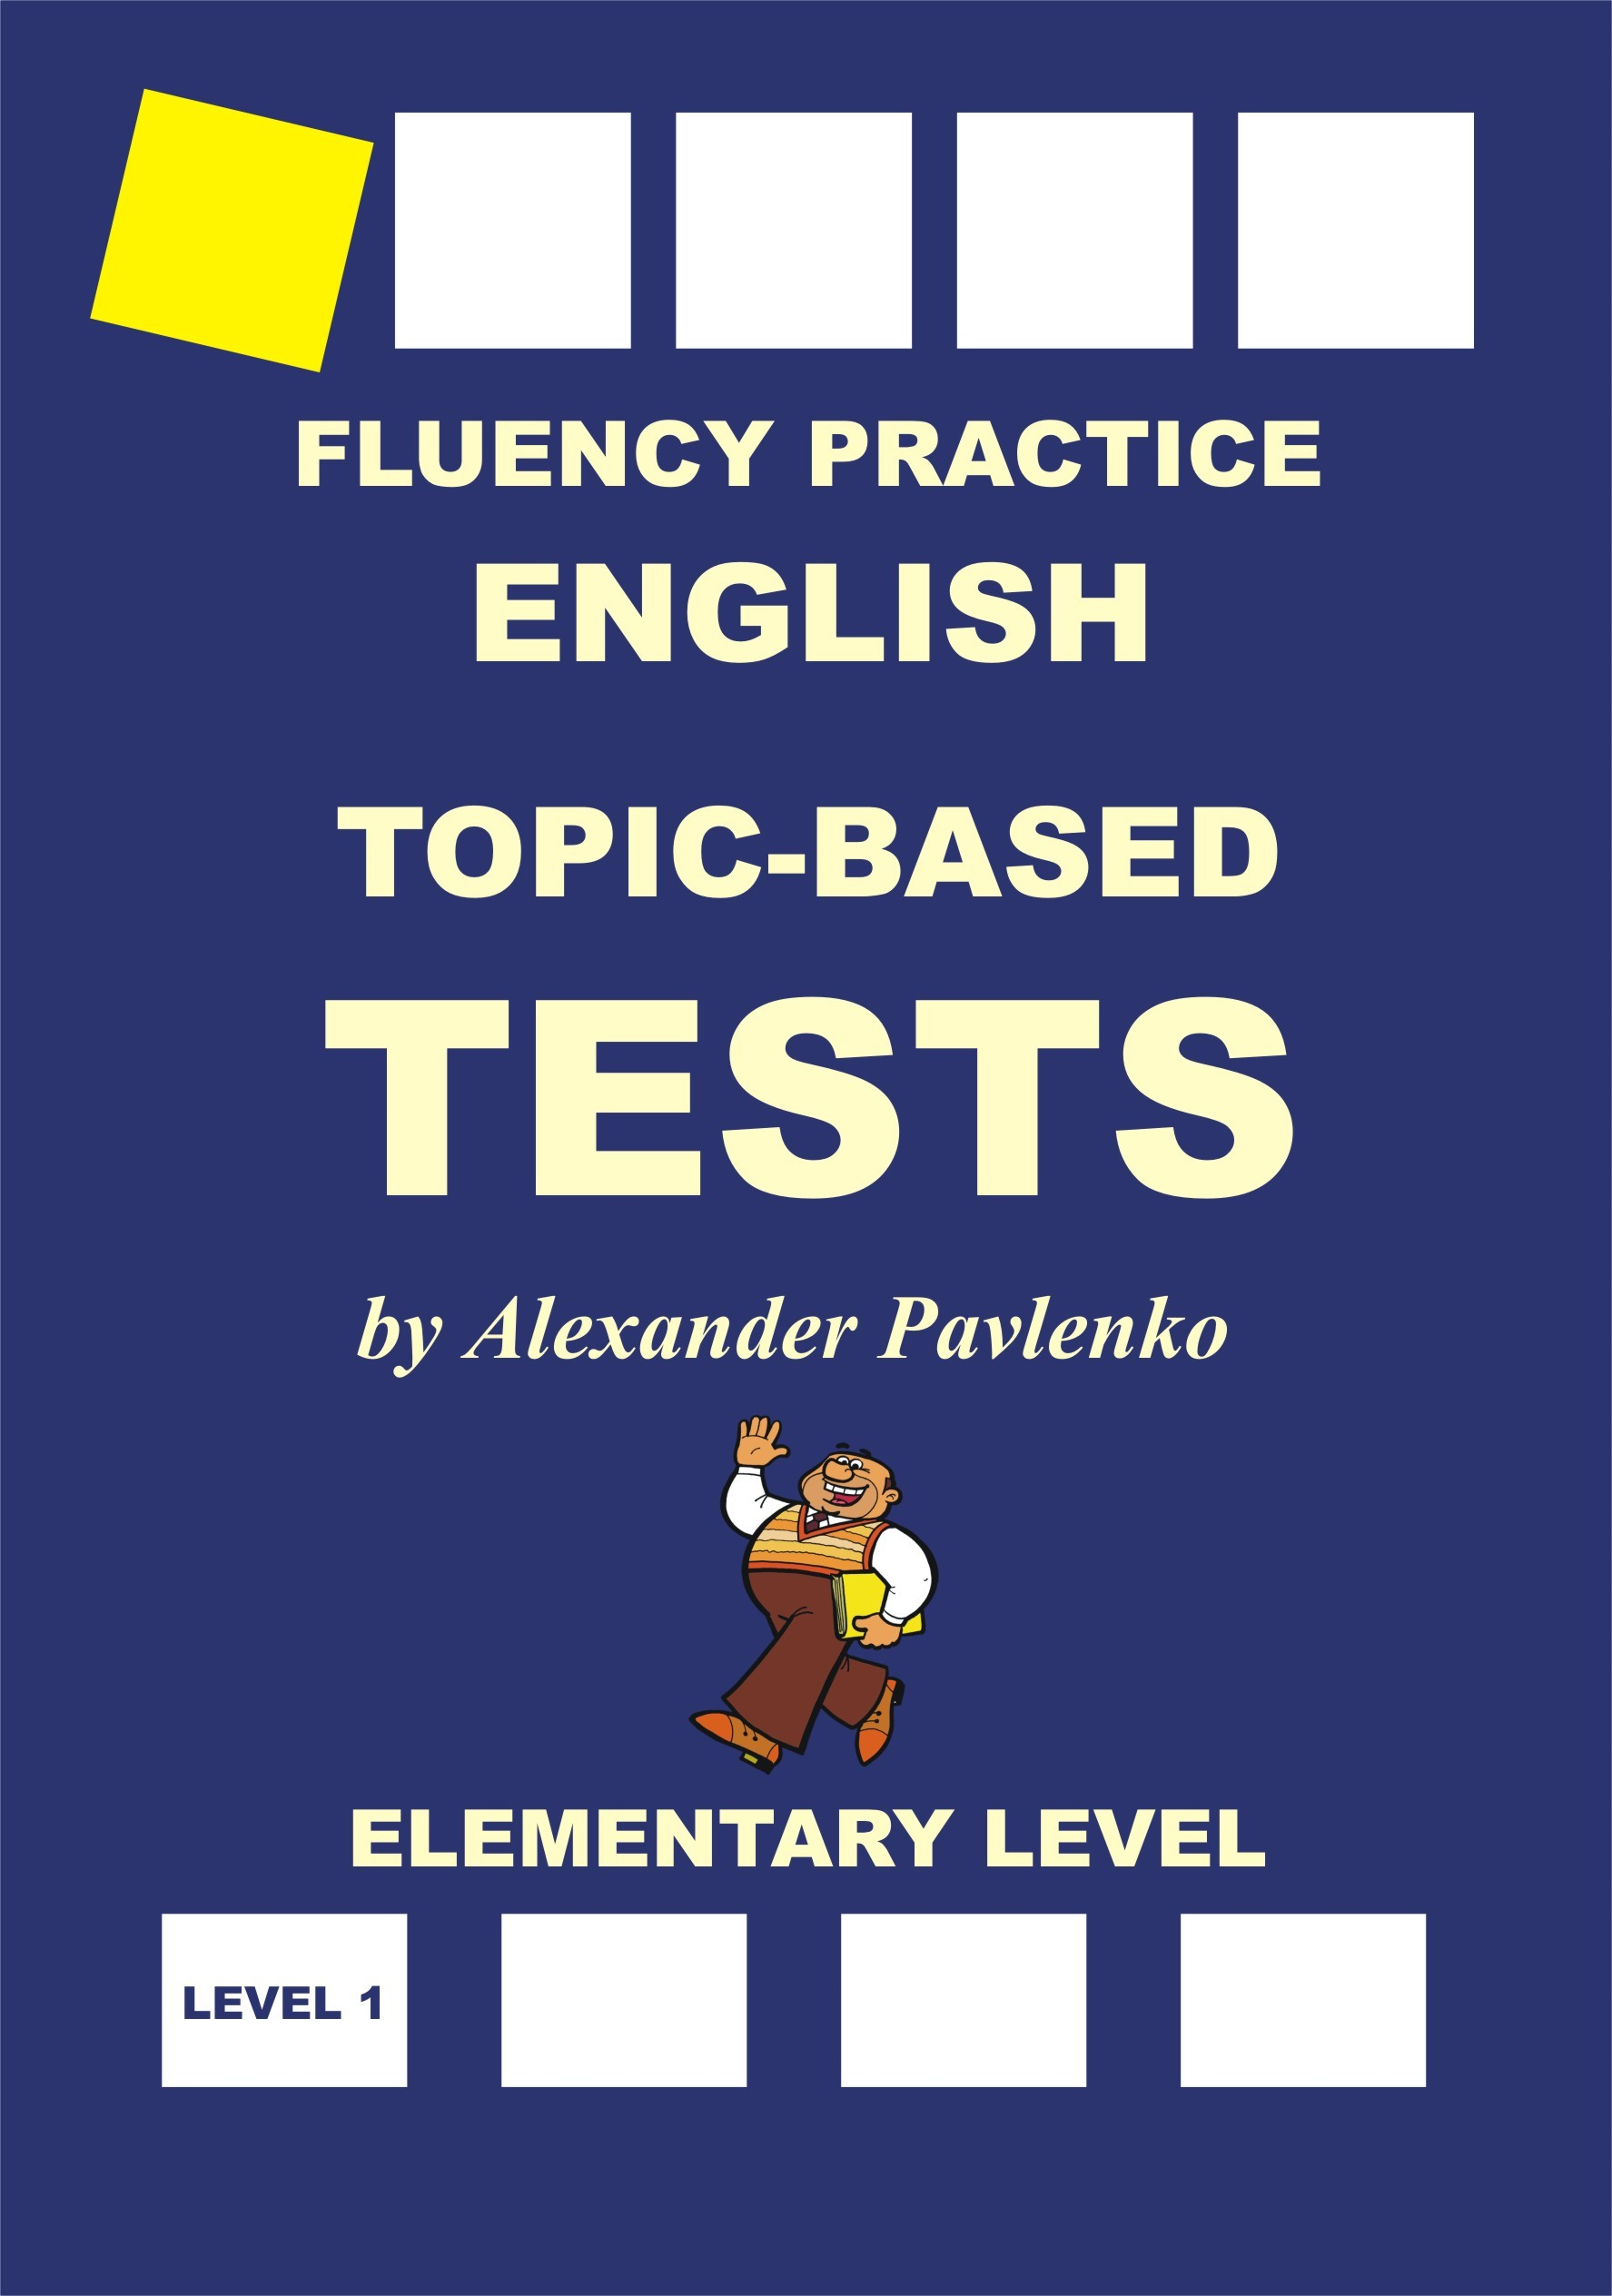 English, Topic-Based Tests, Elementary Level, Fluency Practice